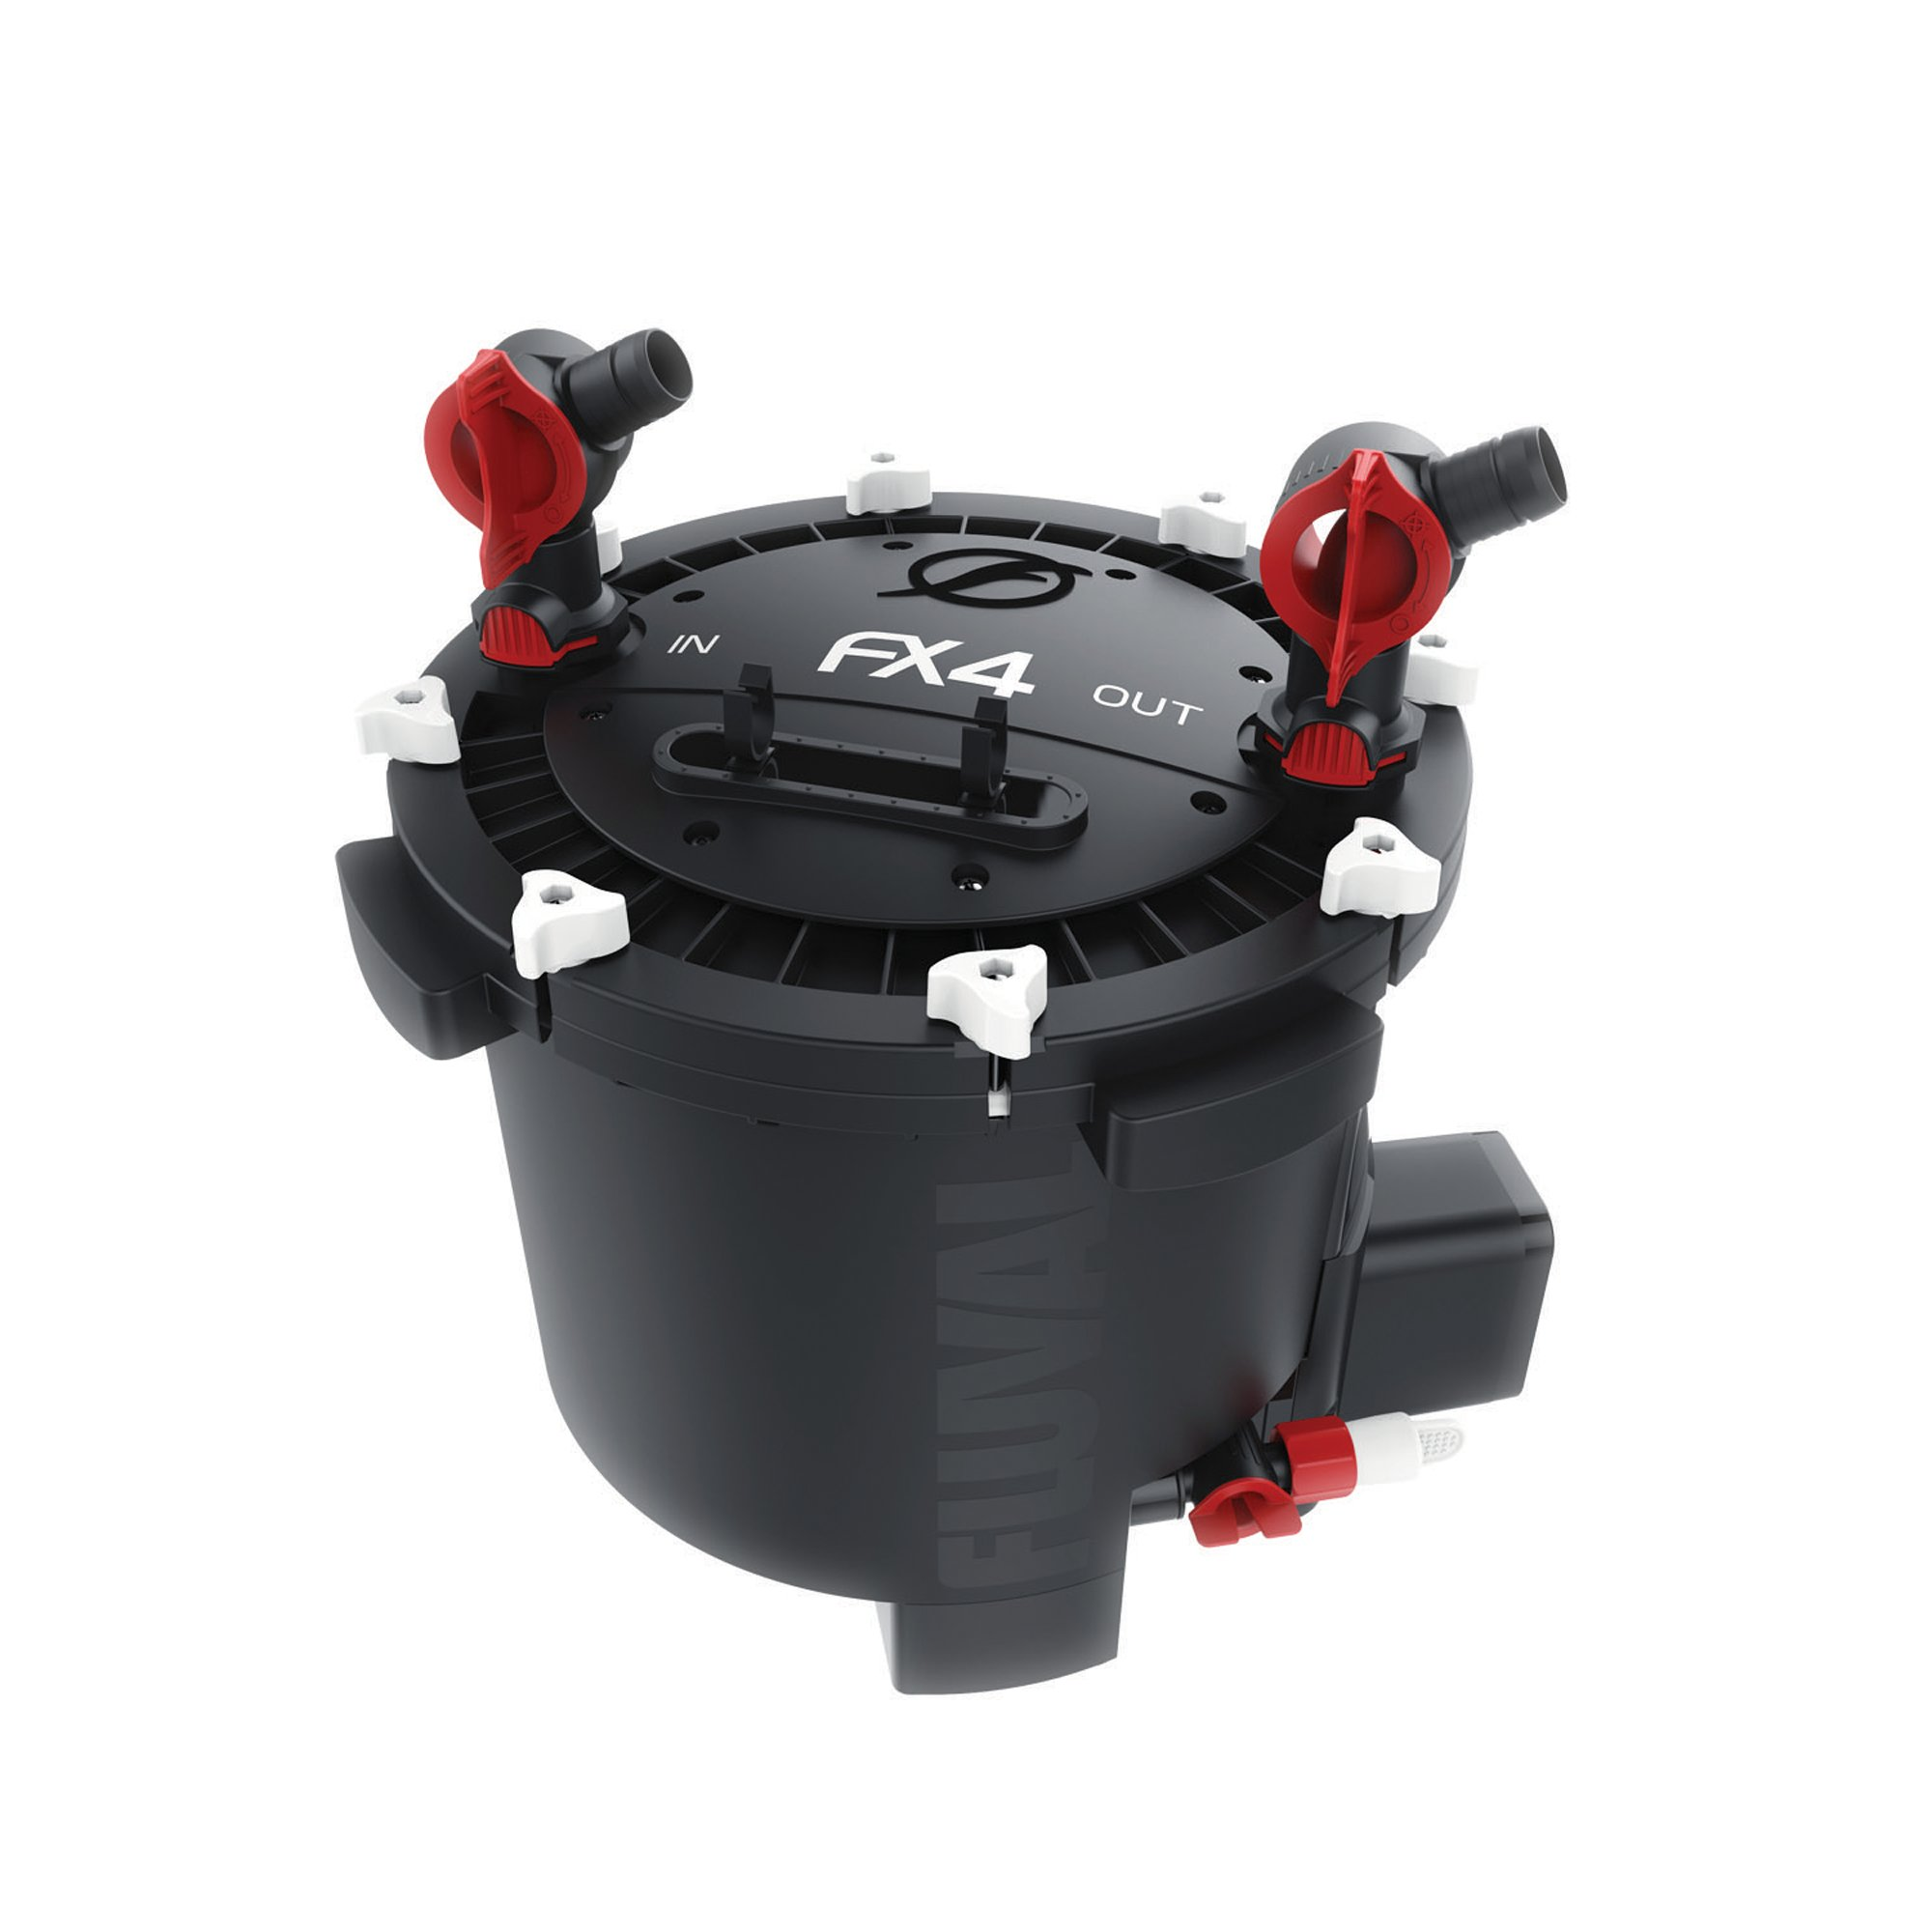 Fluval fx4 canister filter petco for Petco fish filters